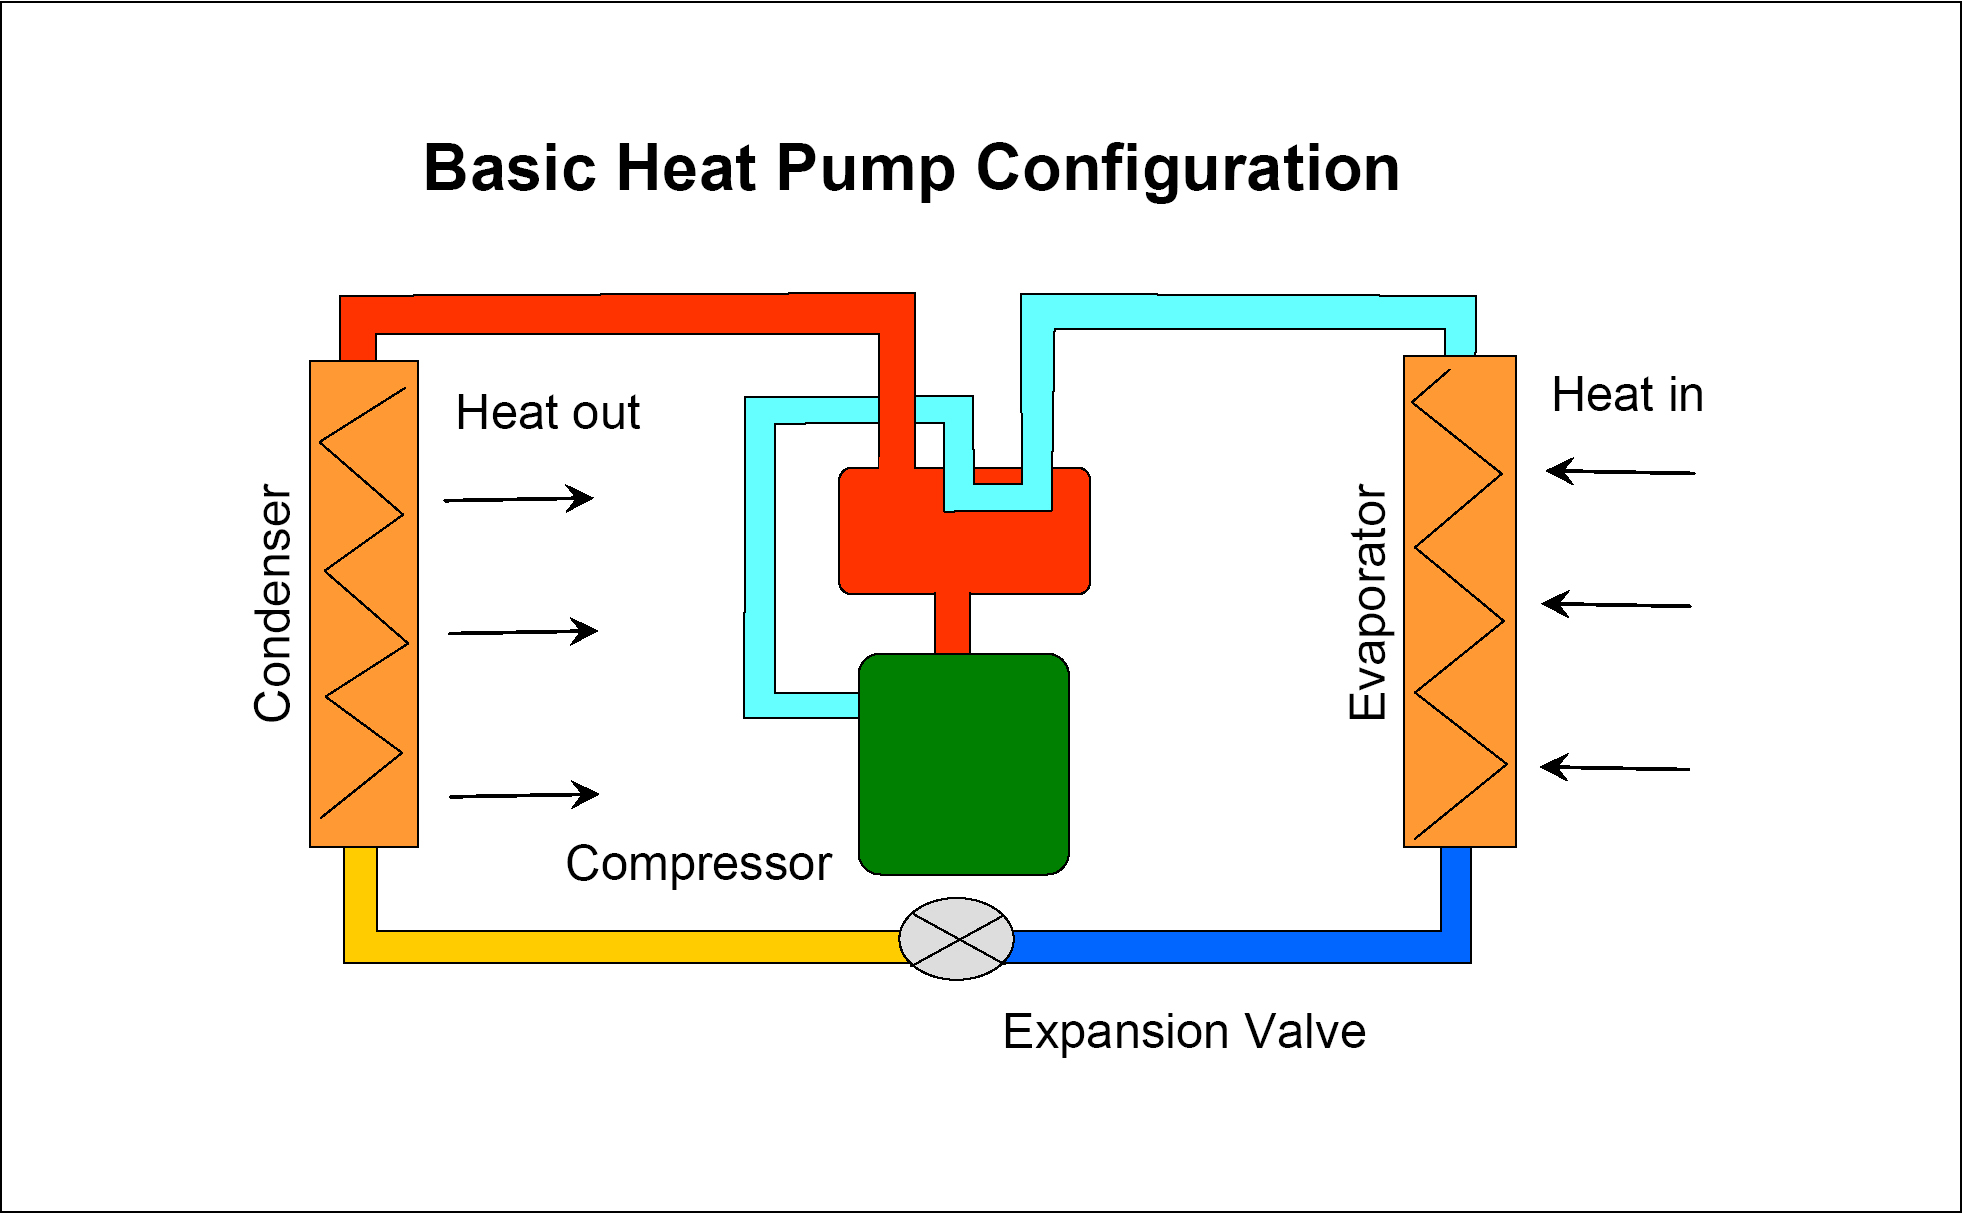 how a gas furnace works diagram with Heat Pumps on Boilers likewise Home Heating Basics likewise Watch furthermore Hvac Systems For Restaurants furthermore Fireplace Blower 20.